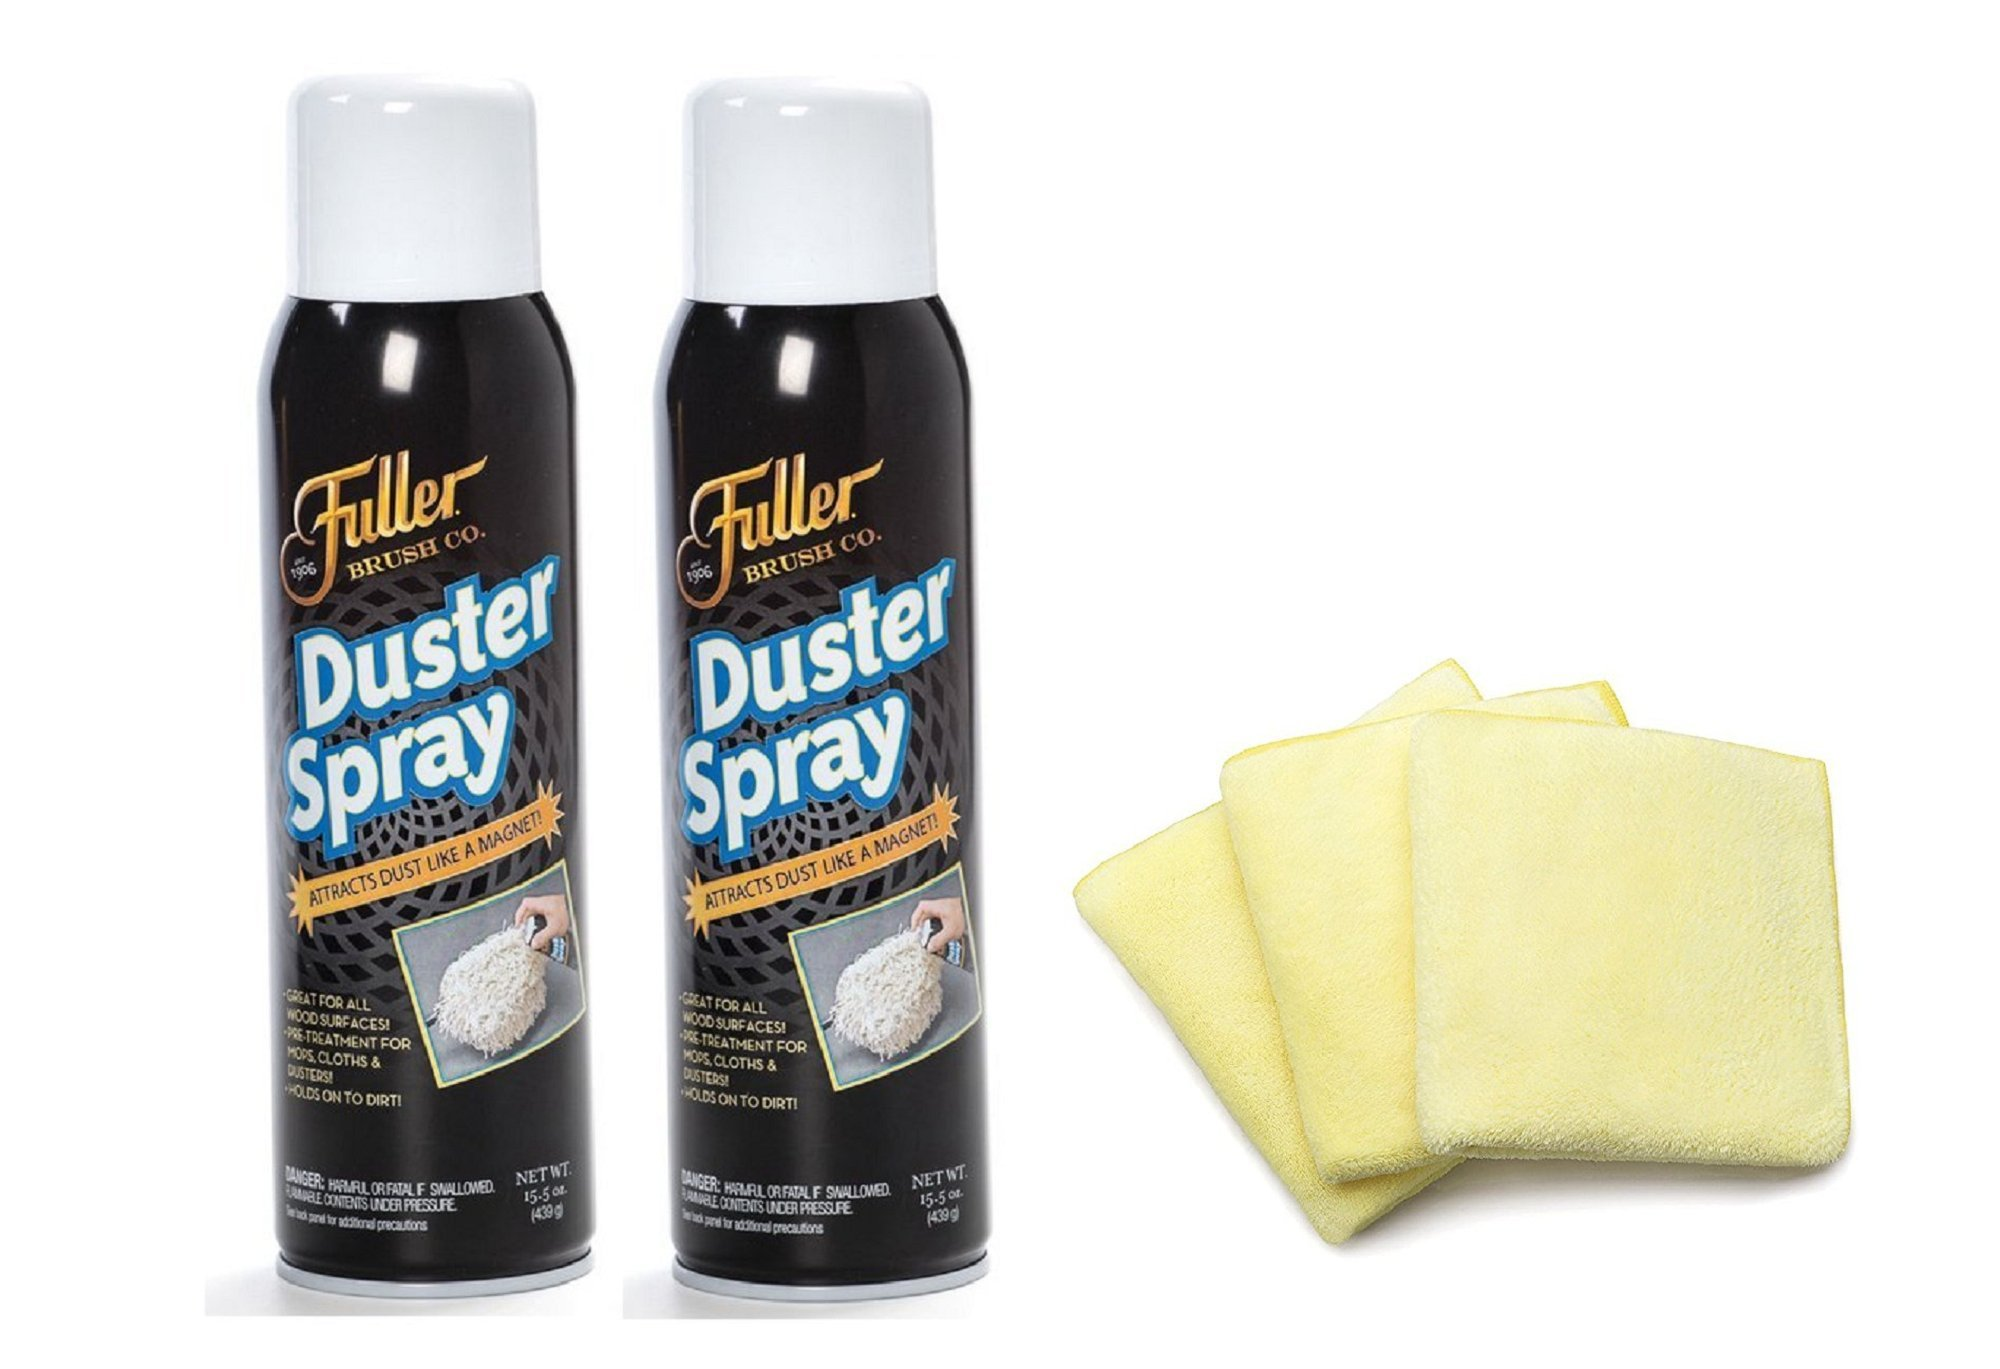 Fuller Brush Duster Sprays with Fuller Brush Dust Grabbing Microfiber Cloths Bundle - Wood & Multi Surface Dust Attractor & Cleaner by Fuller Brush